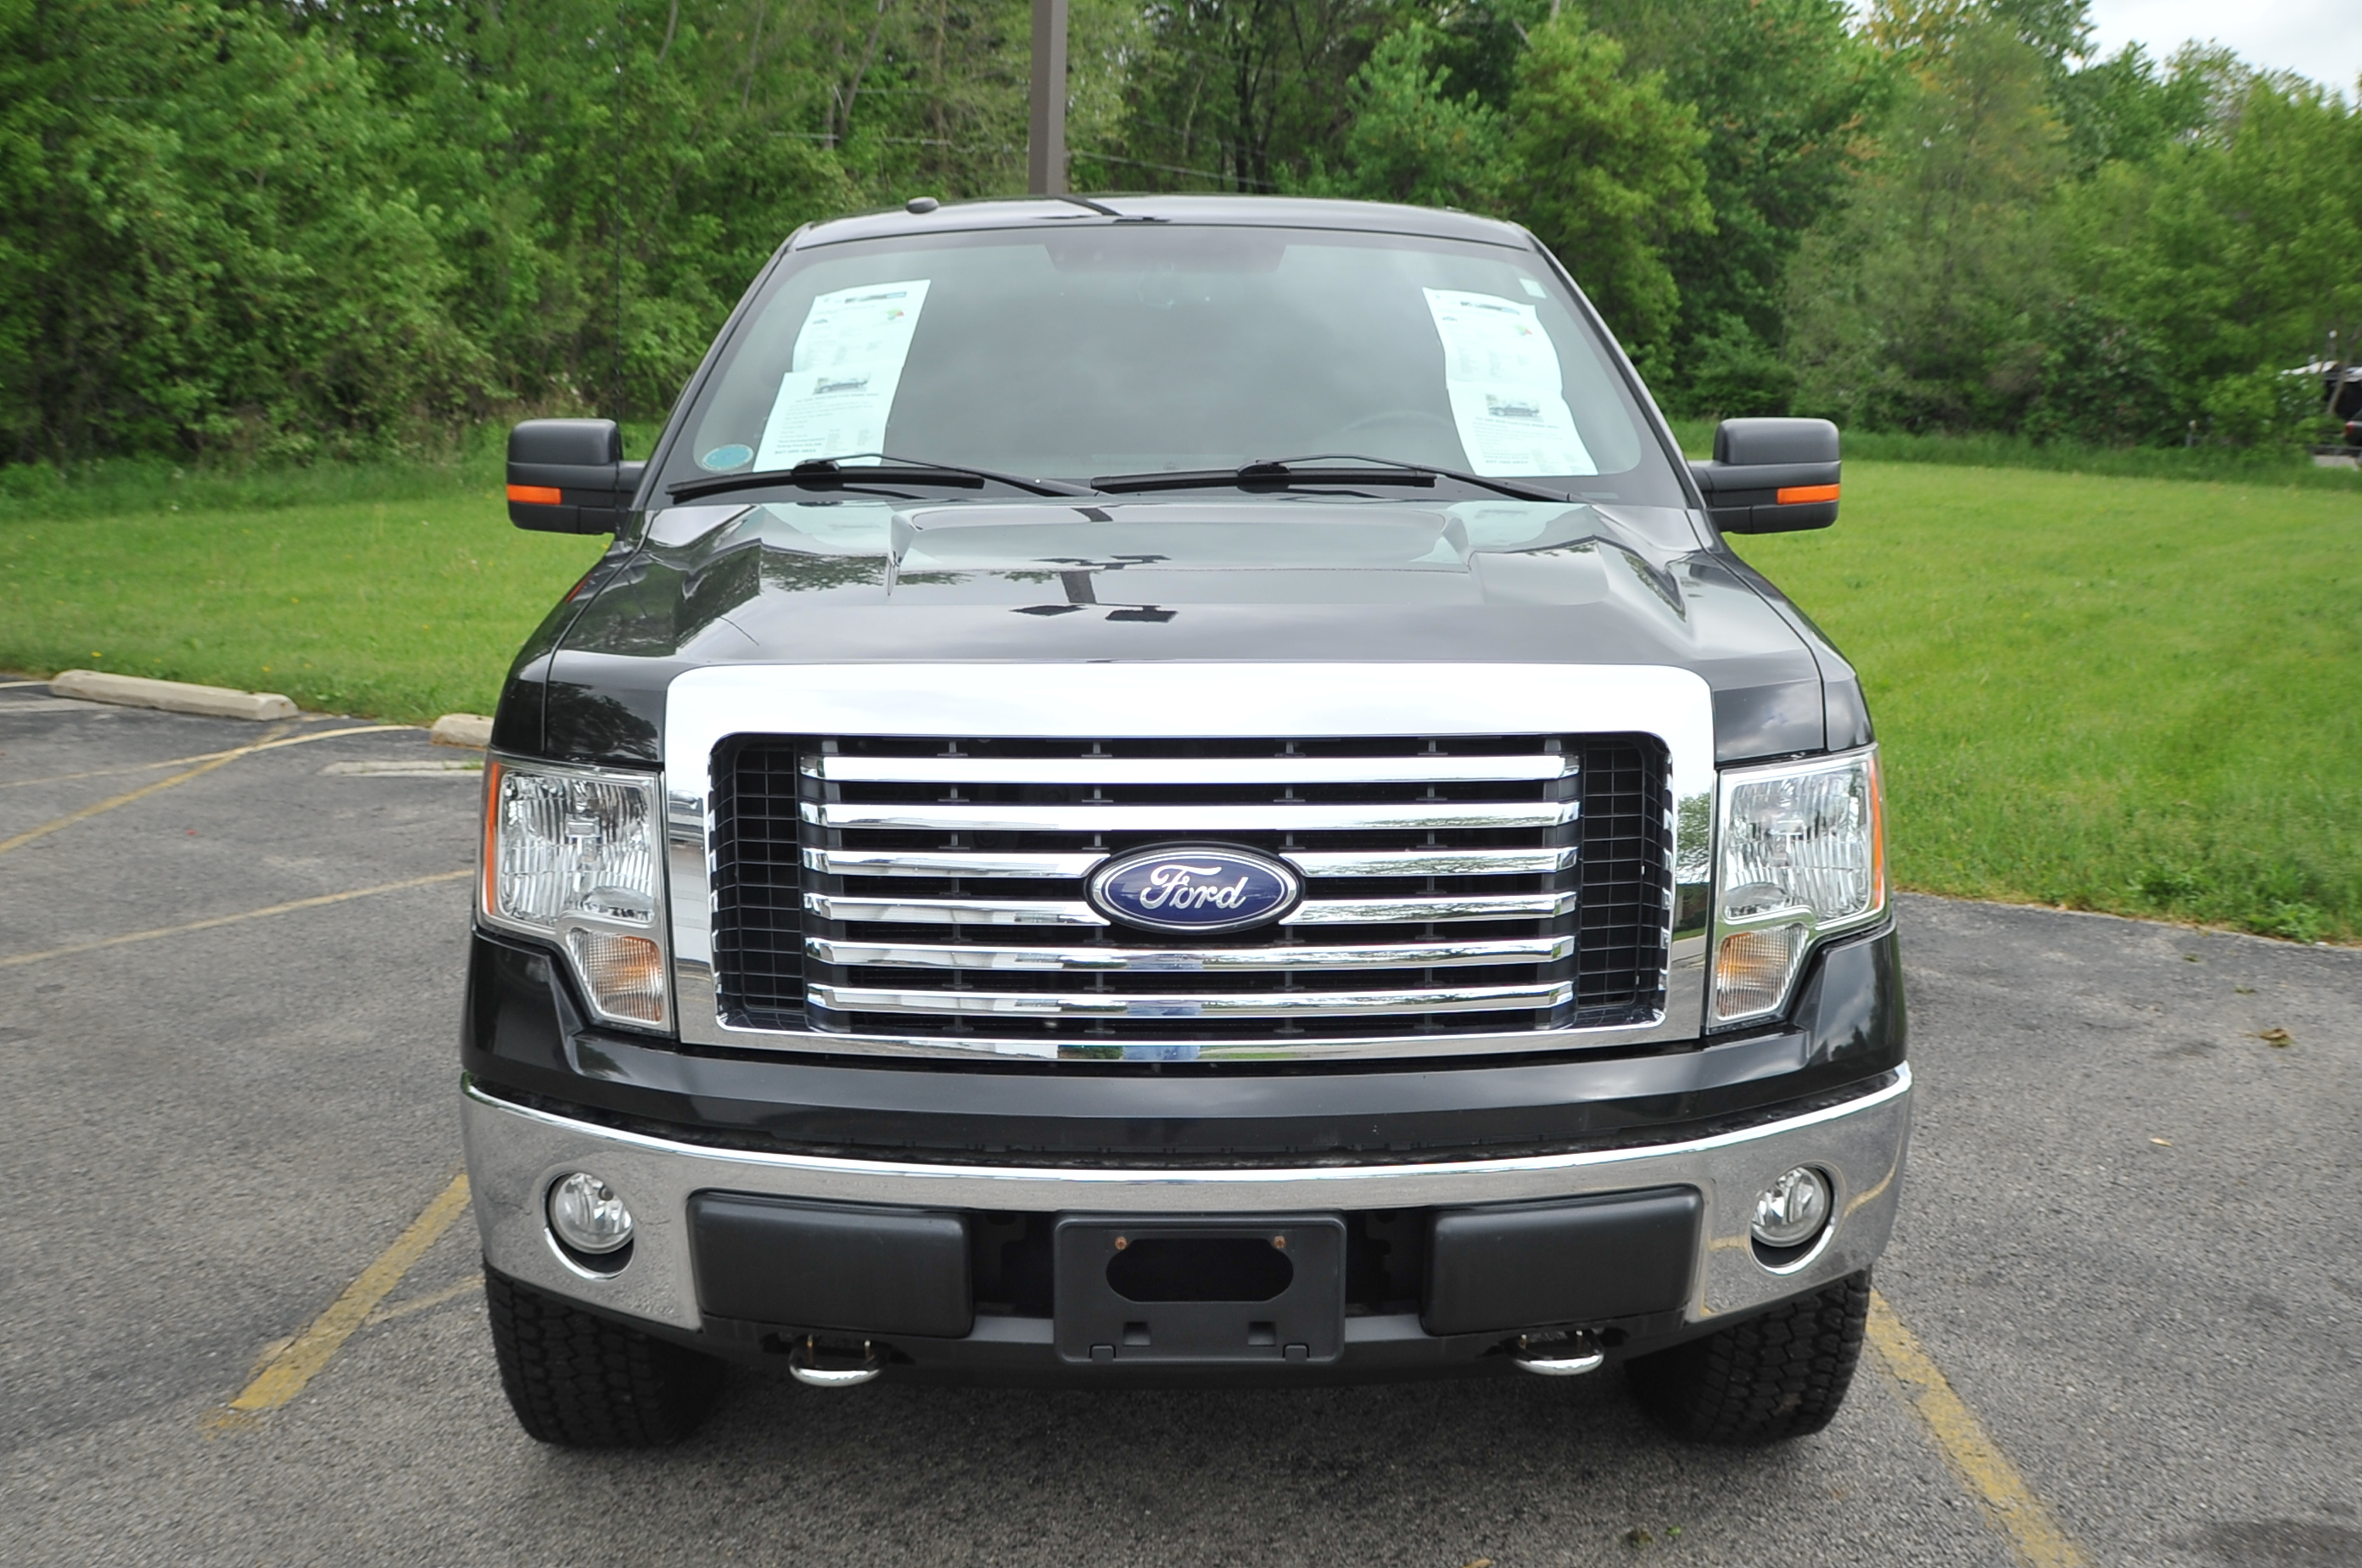 2010 Ford F150 Black 4x4 Super Crew Cab Pickup Truck Sale Beach Park